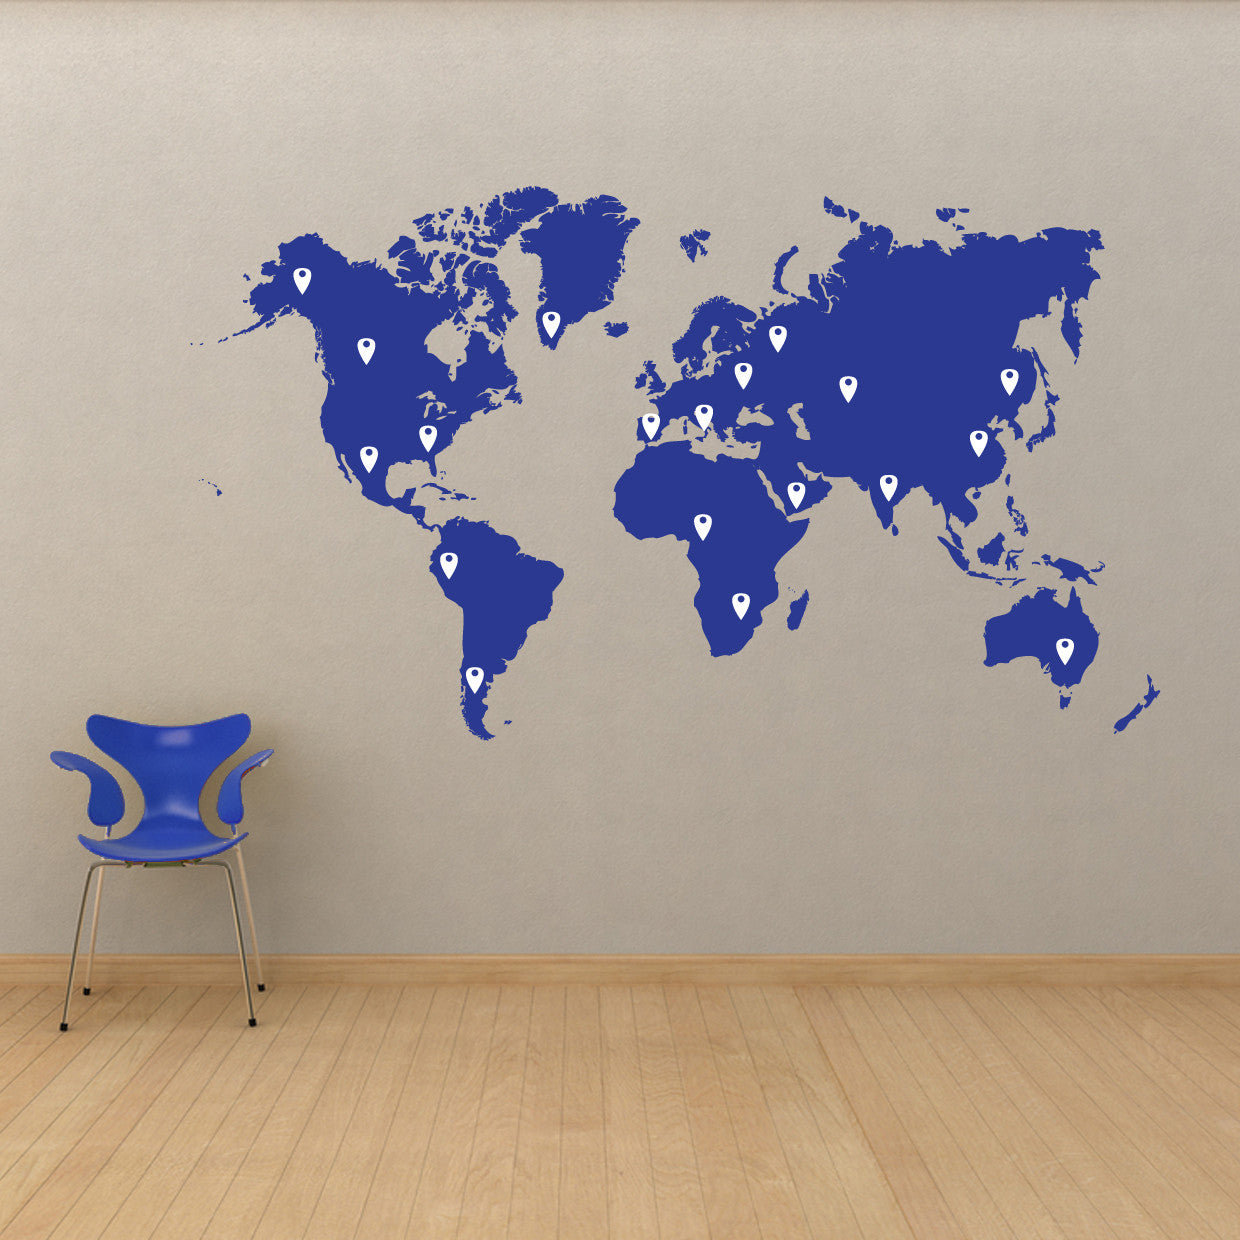 World map vinyl wall decal world map with pins world map pin drops decal 873 gumiabroncs Gallery